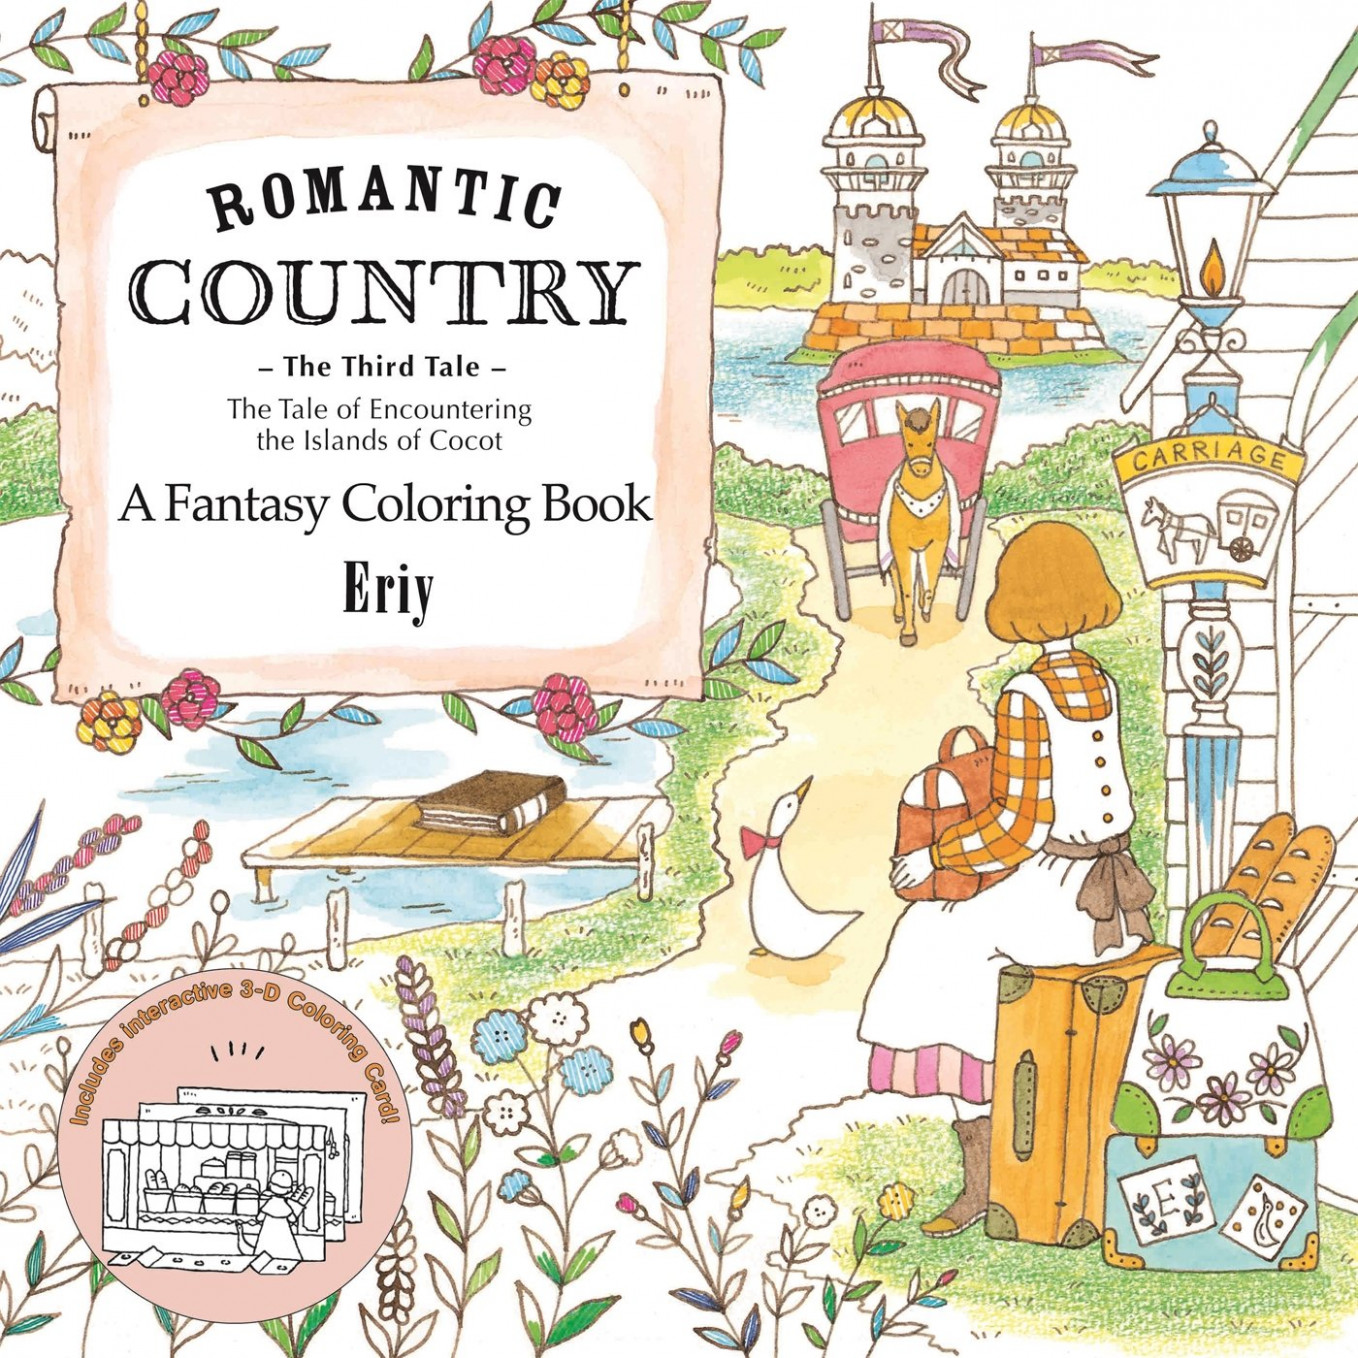 Amazon.com: Romantic Country: The Third Tale: A Fantasy Coloring ..